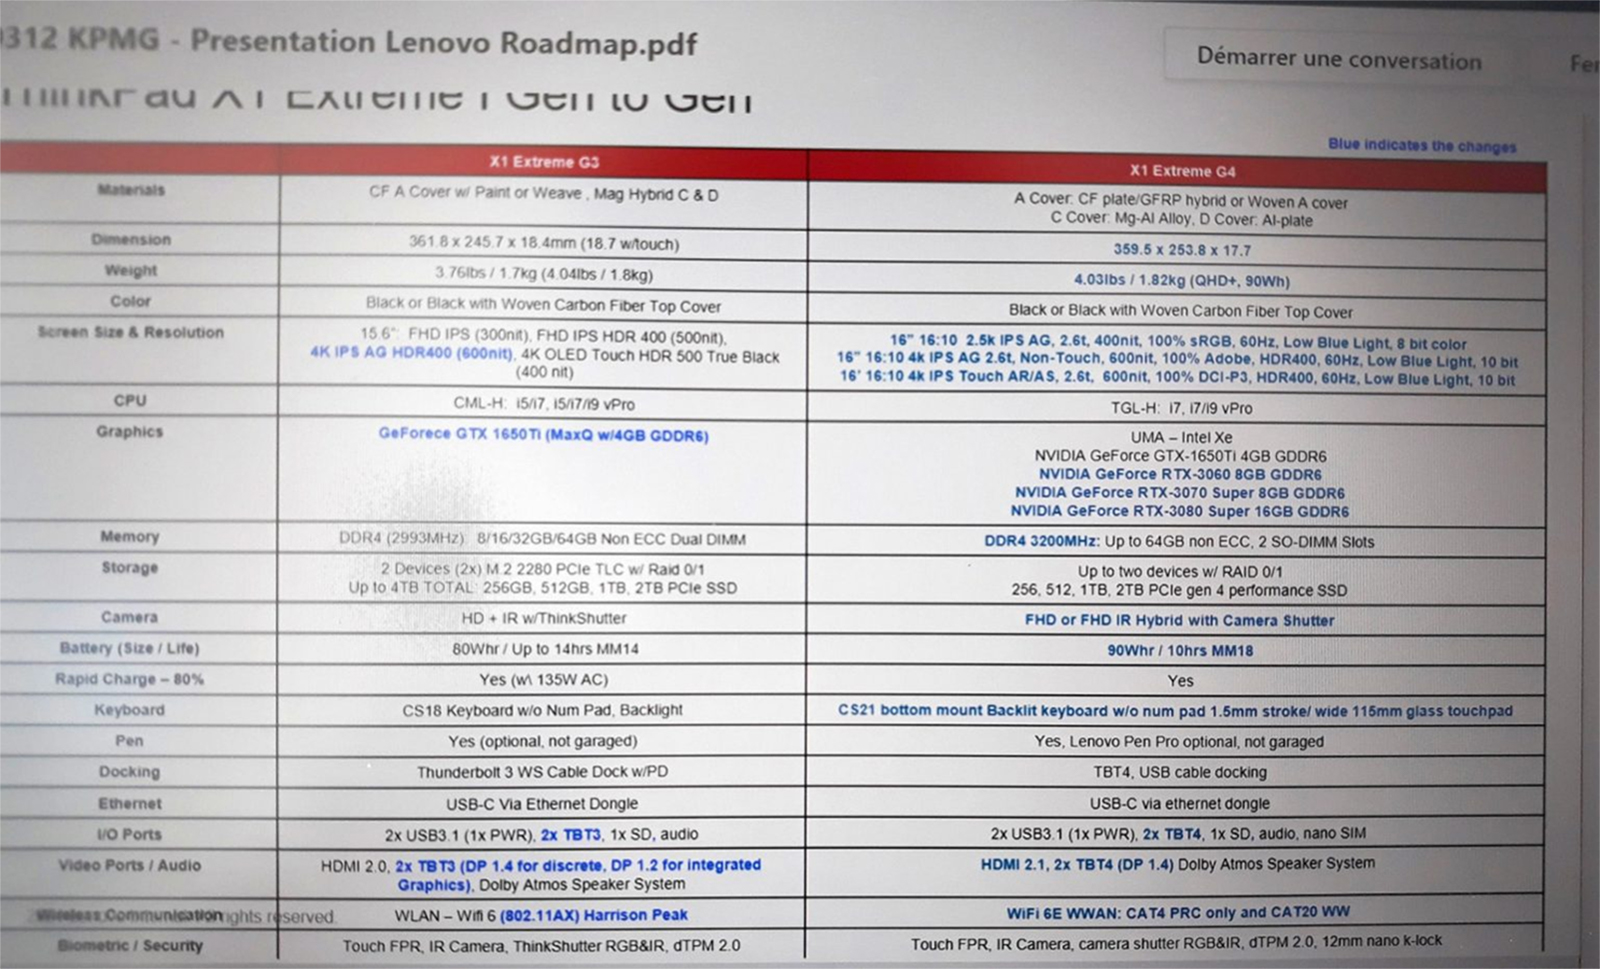 An Allegedly Leaked Roadmap From Lenovo For The ThinkPad X1 Extreme Showing RTX 3080 Super and RTX 3070 Super GPU Options